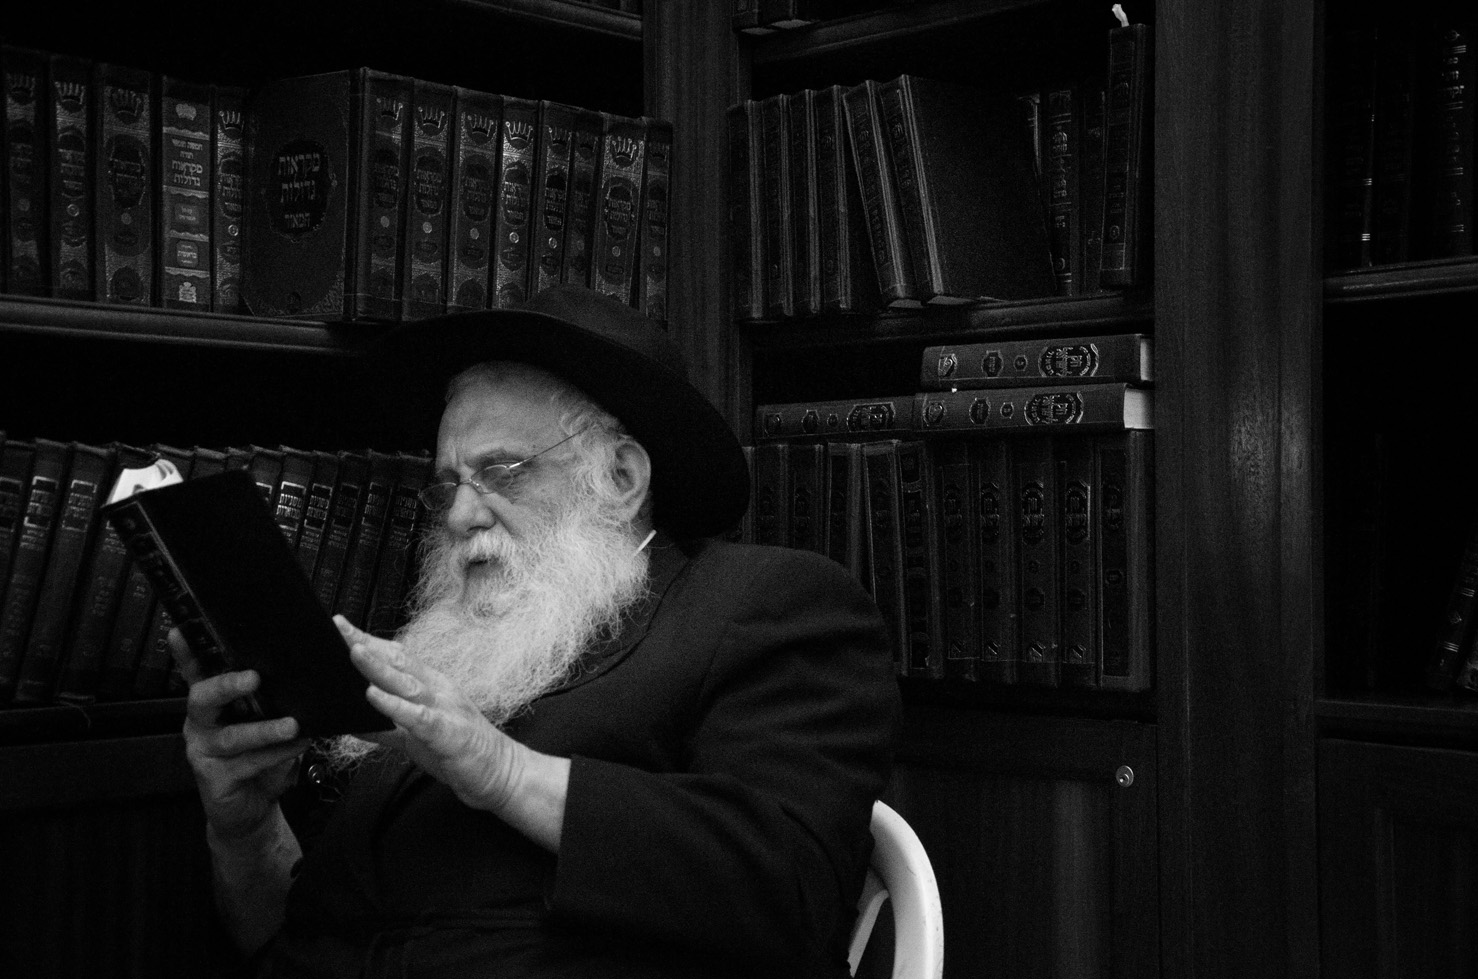 Libro Sagrado Judio Through Israel Febrero 2012